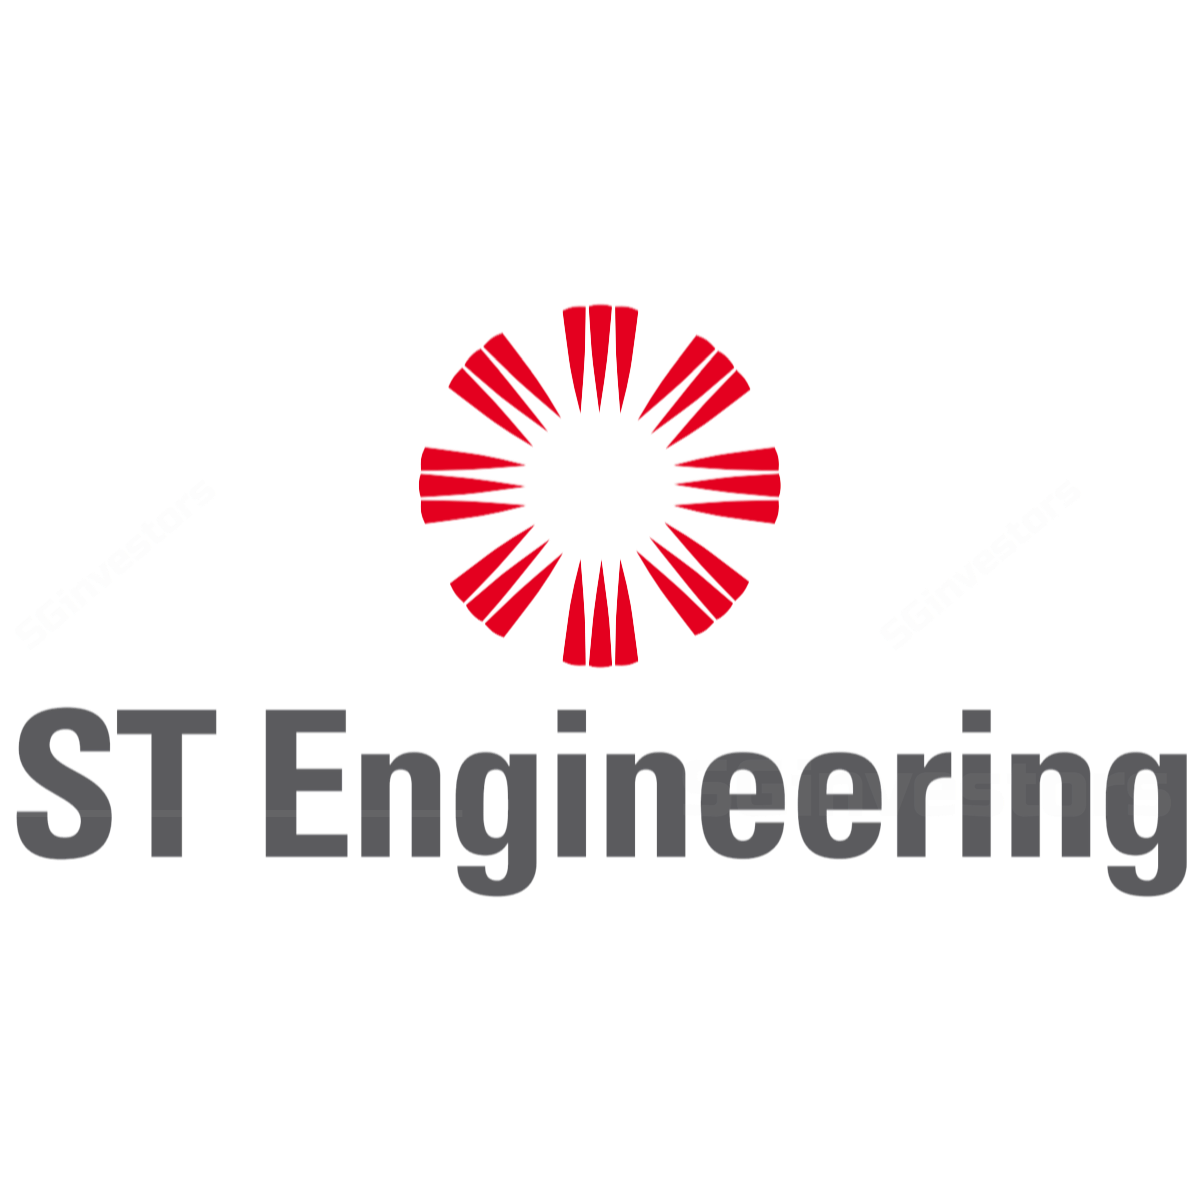 ST Engineering - OCBC Investment Research 2018-08-10: Growing With The Nation And More